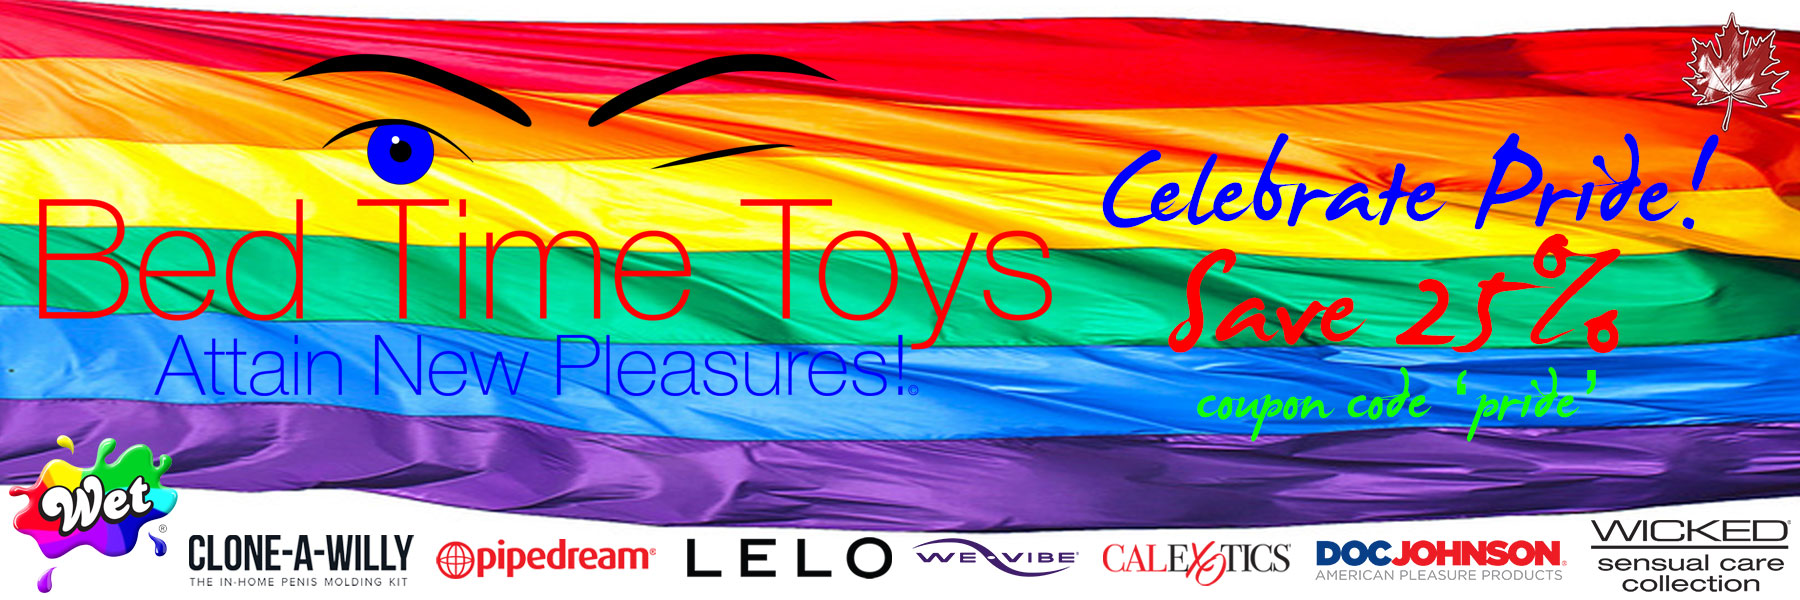 Bed Time Toys, Gay Pride Sale, Sex Toys, Canada